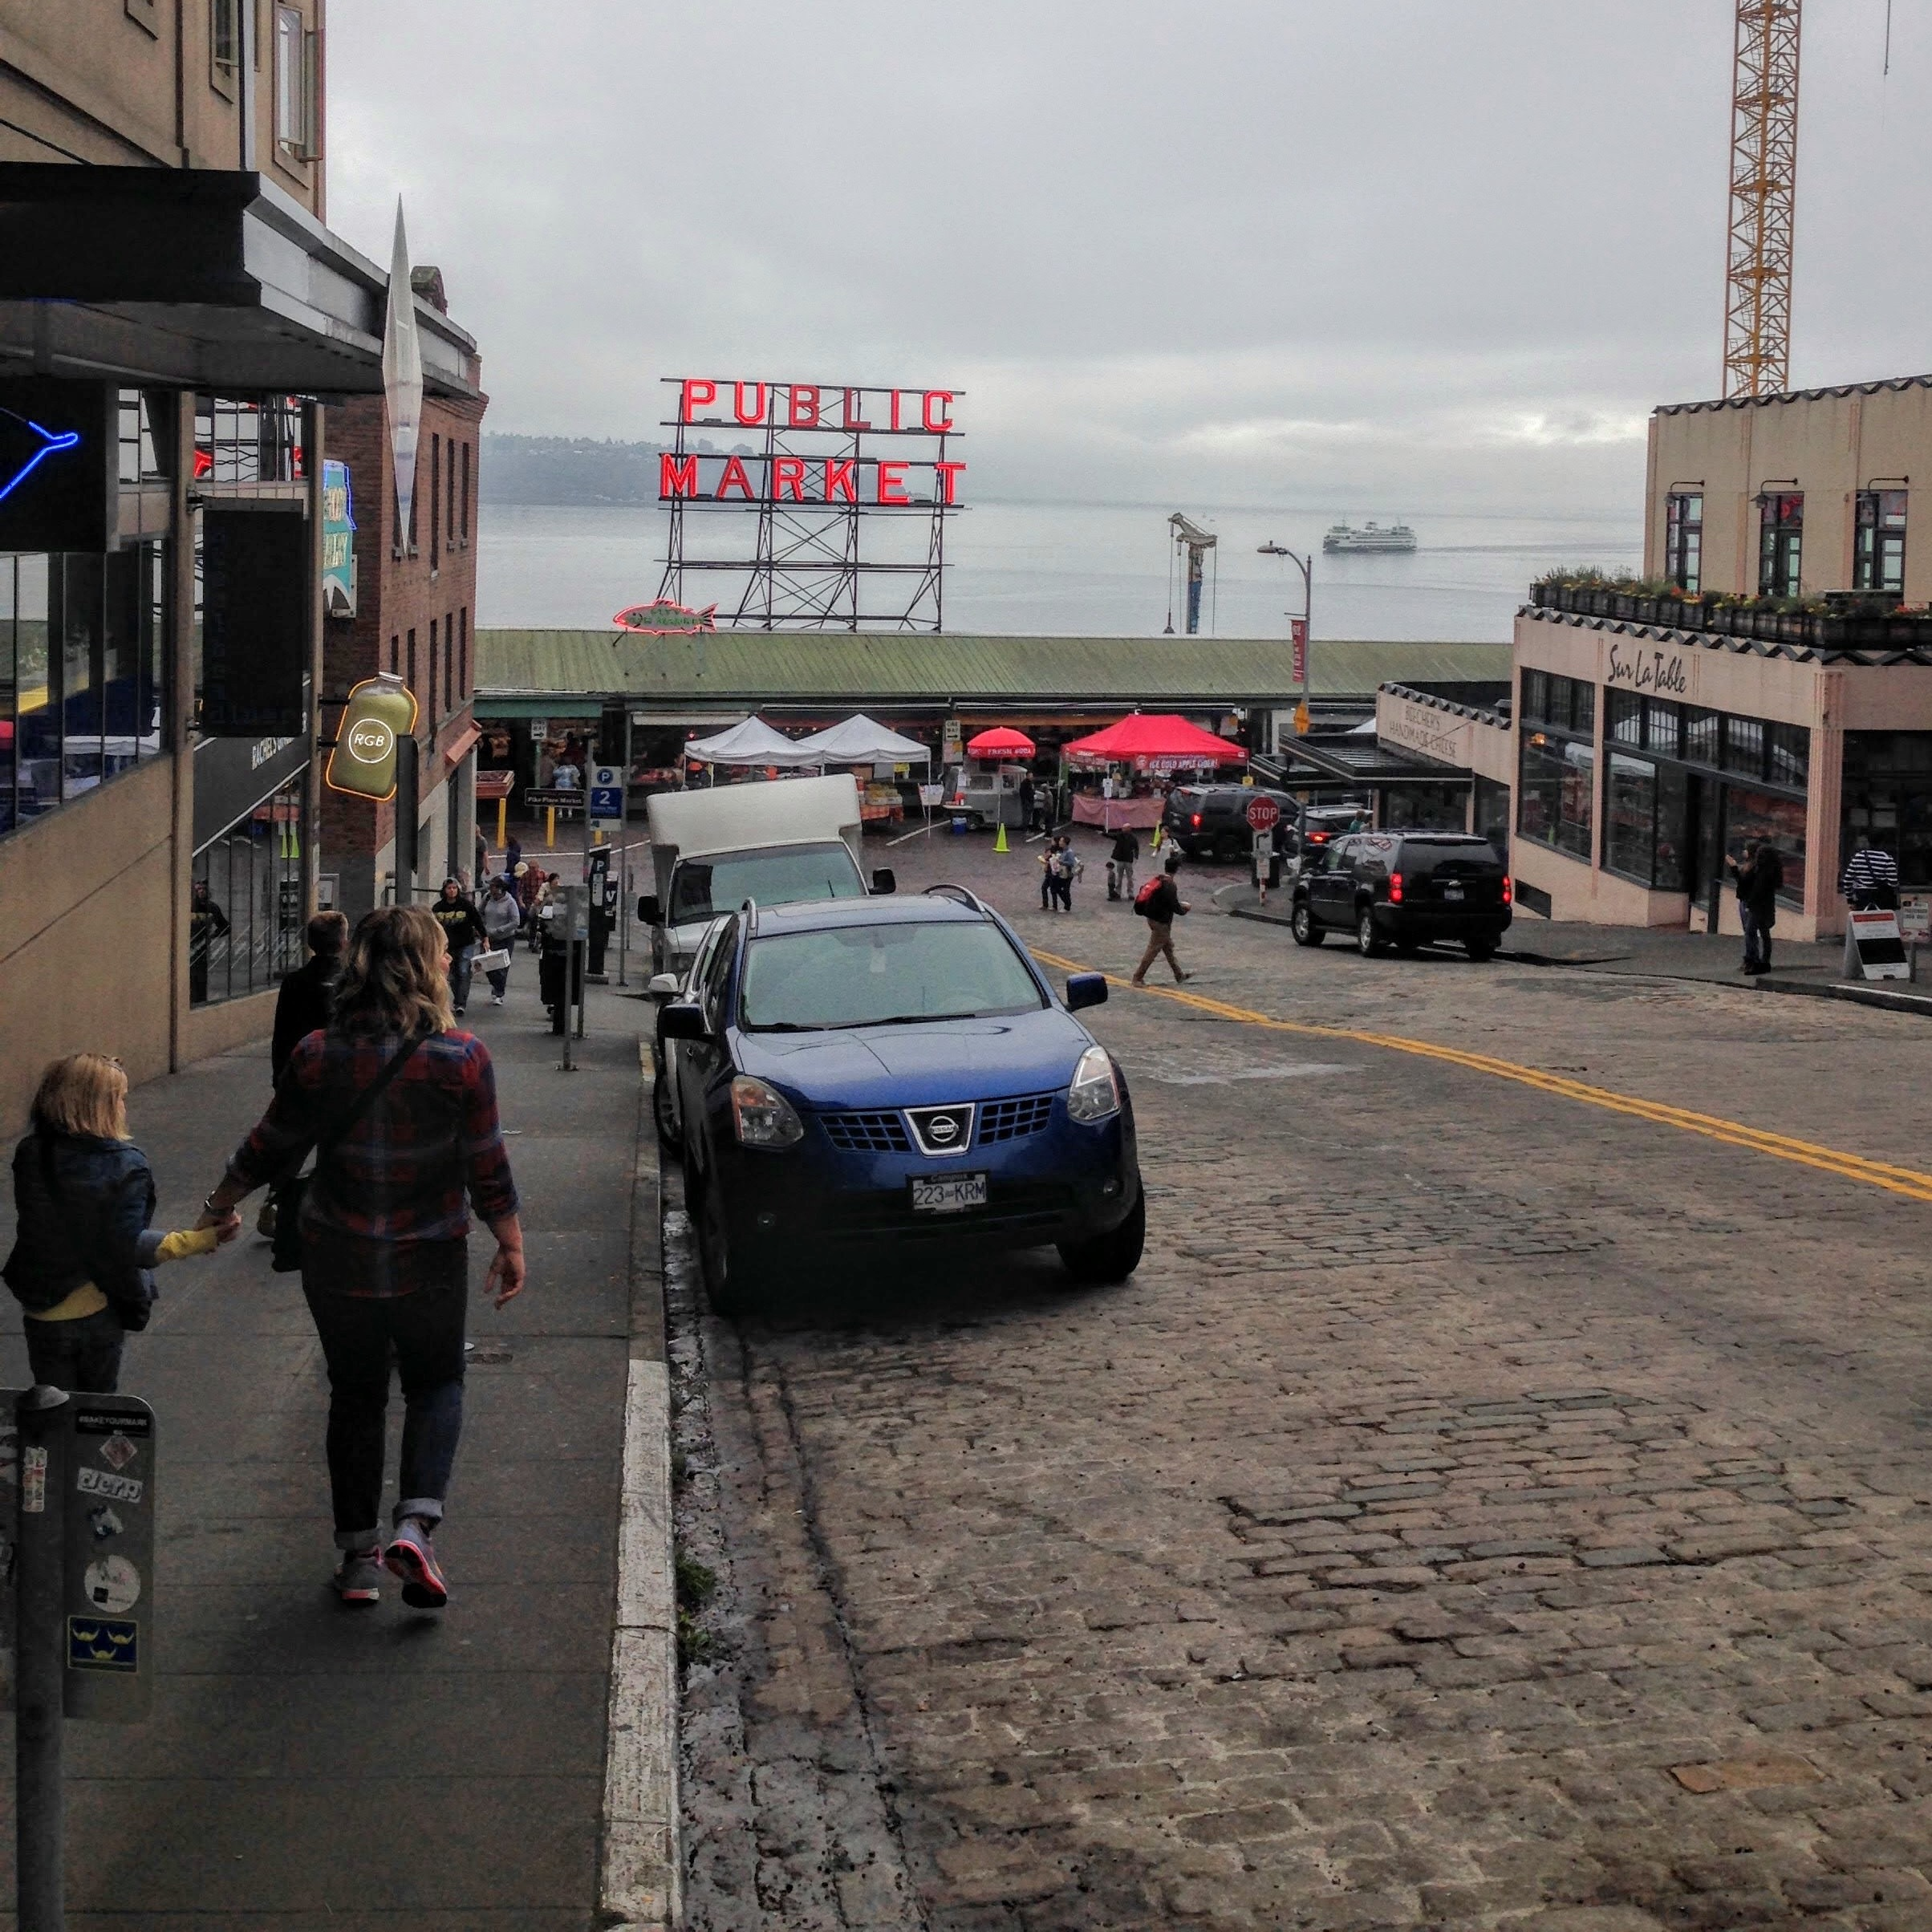 The iconic  Pike Place Market  with ferry boat on the water in the Sound.